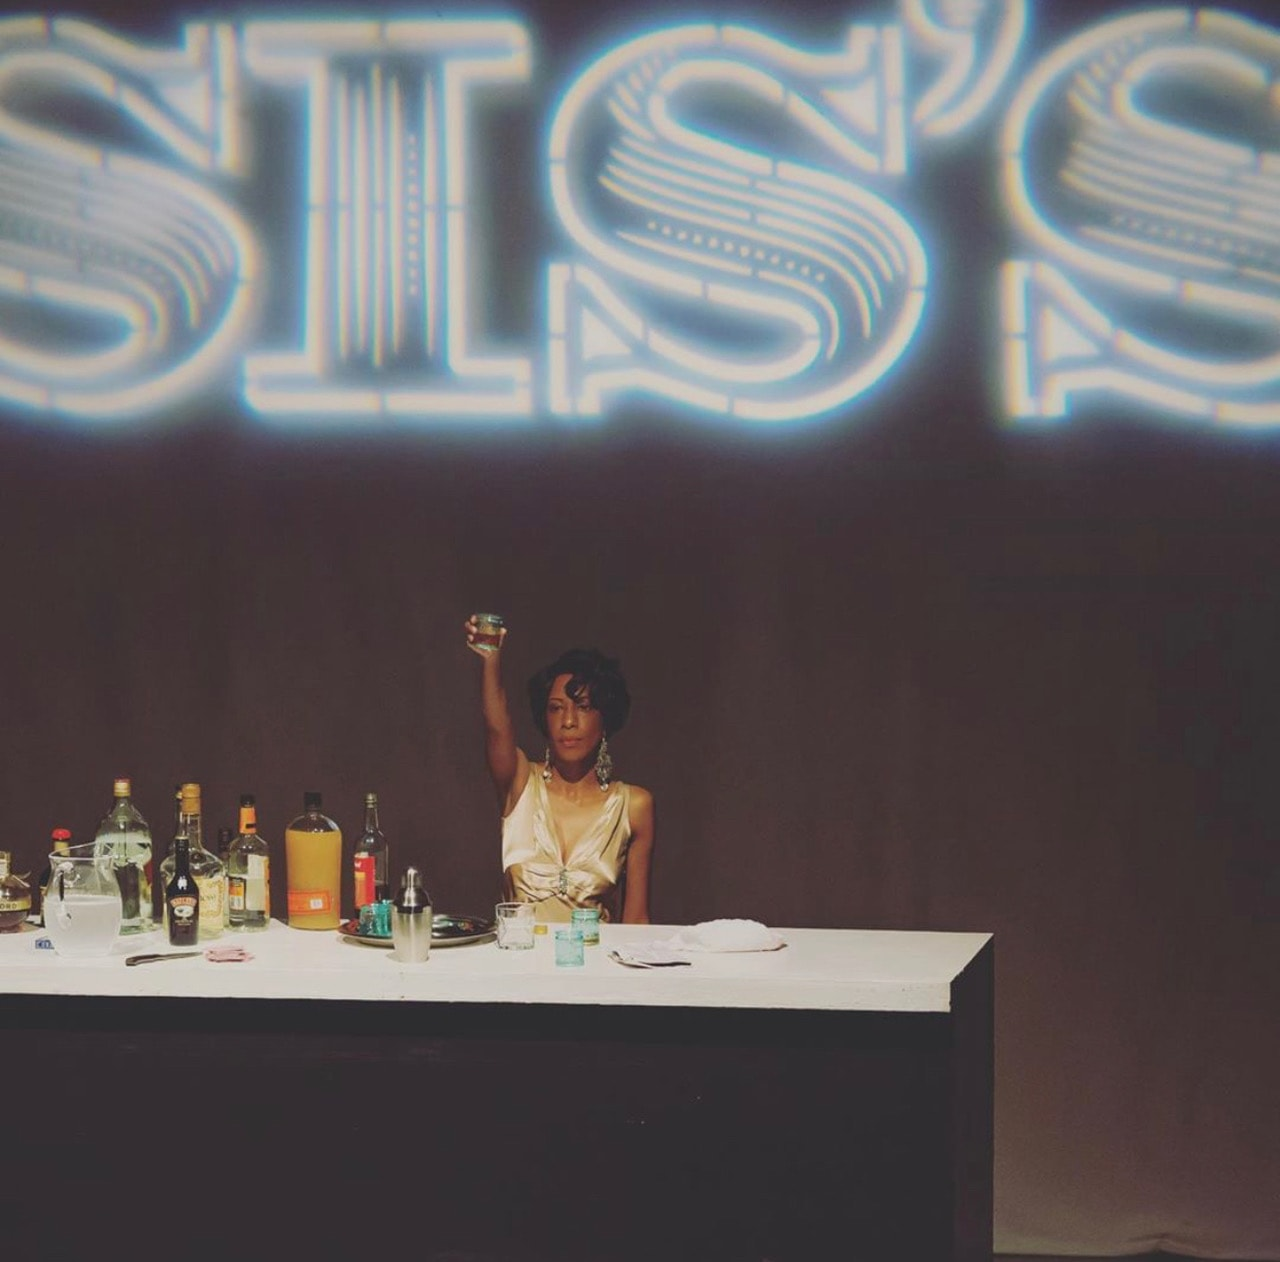 Tai Alexander as Sis Walls in 'Welcome to Sis's' by Ally Theatre Company. Photo by Angelisa Gillyard.